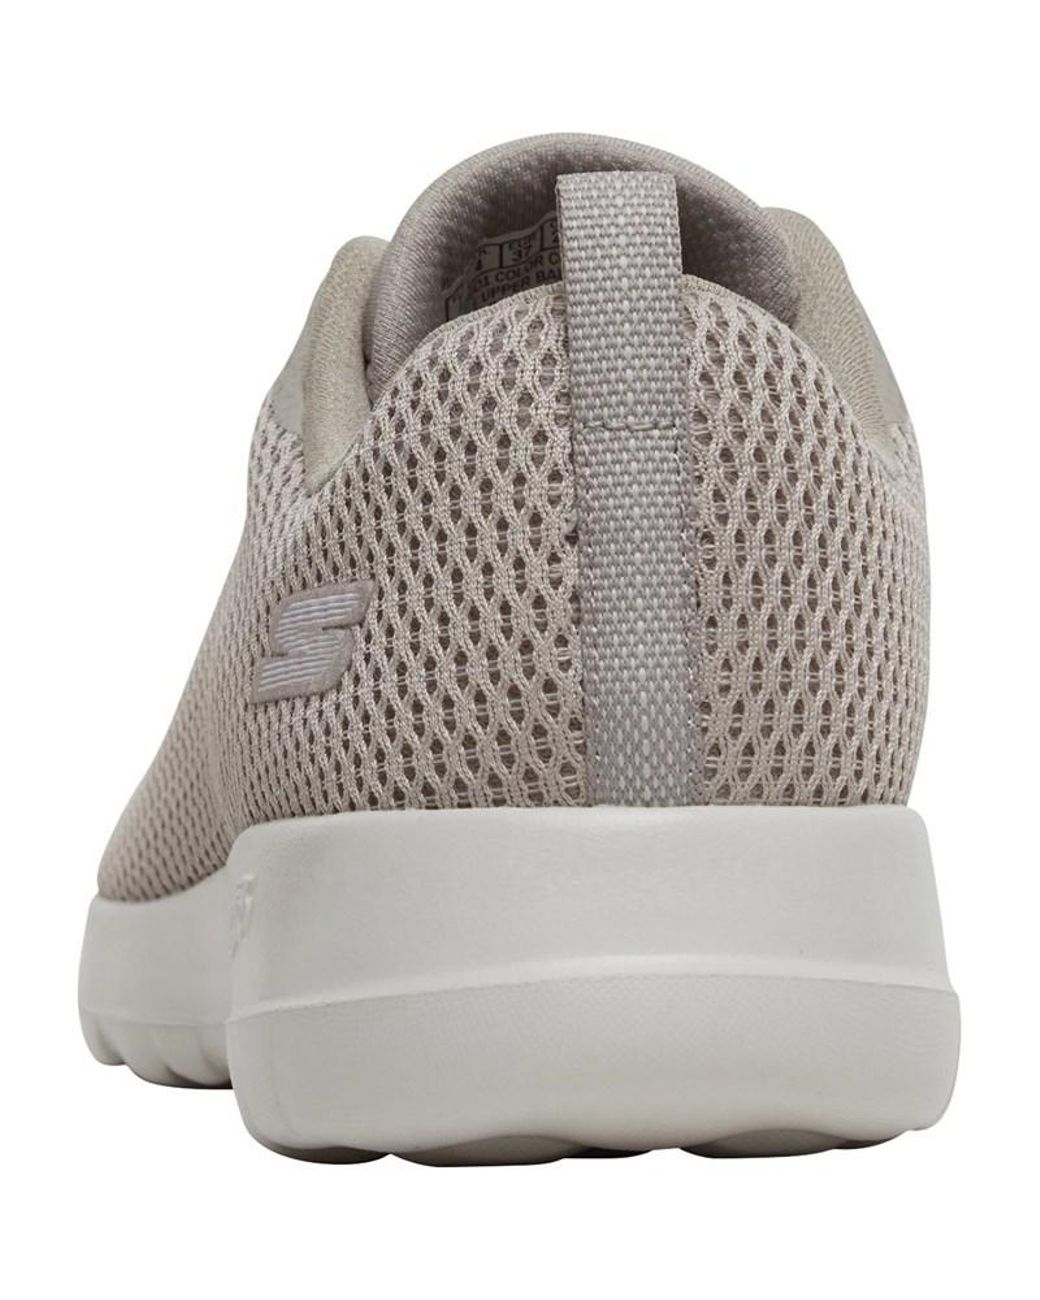 6297ad71e27c0 Skechers Gowalk Joy Paradise Trainers Taupe/white in Natural - Lyst